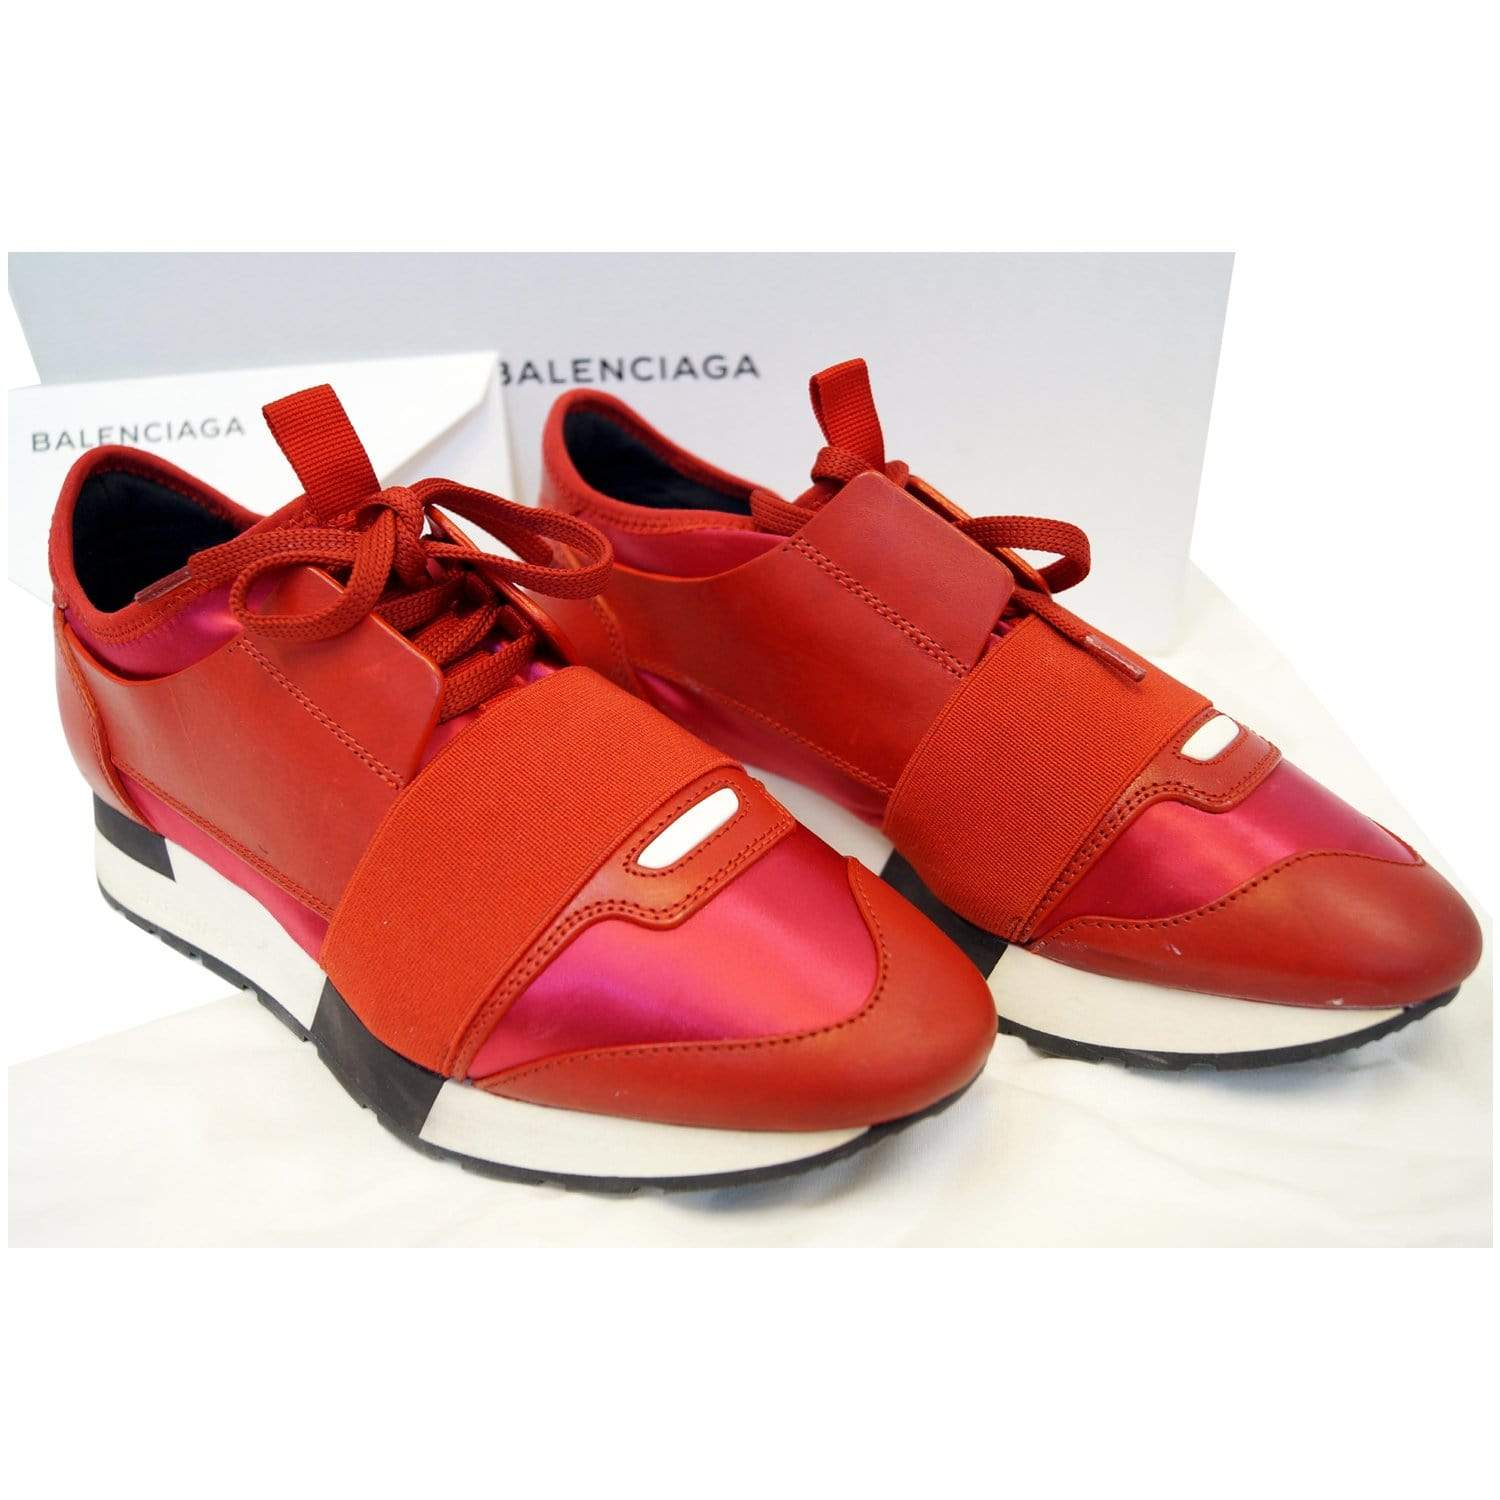 BALENCIAGA Race Runner Low Top Sneakers Red